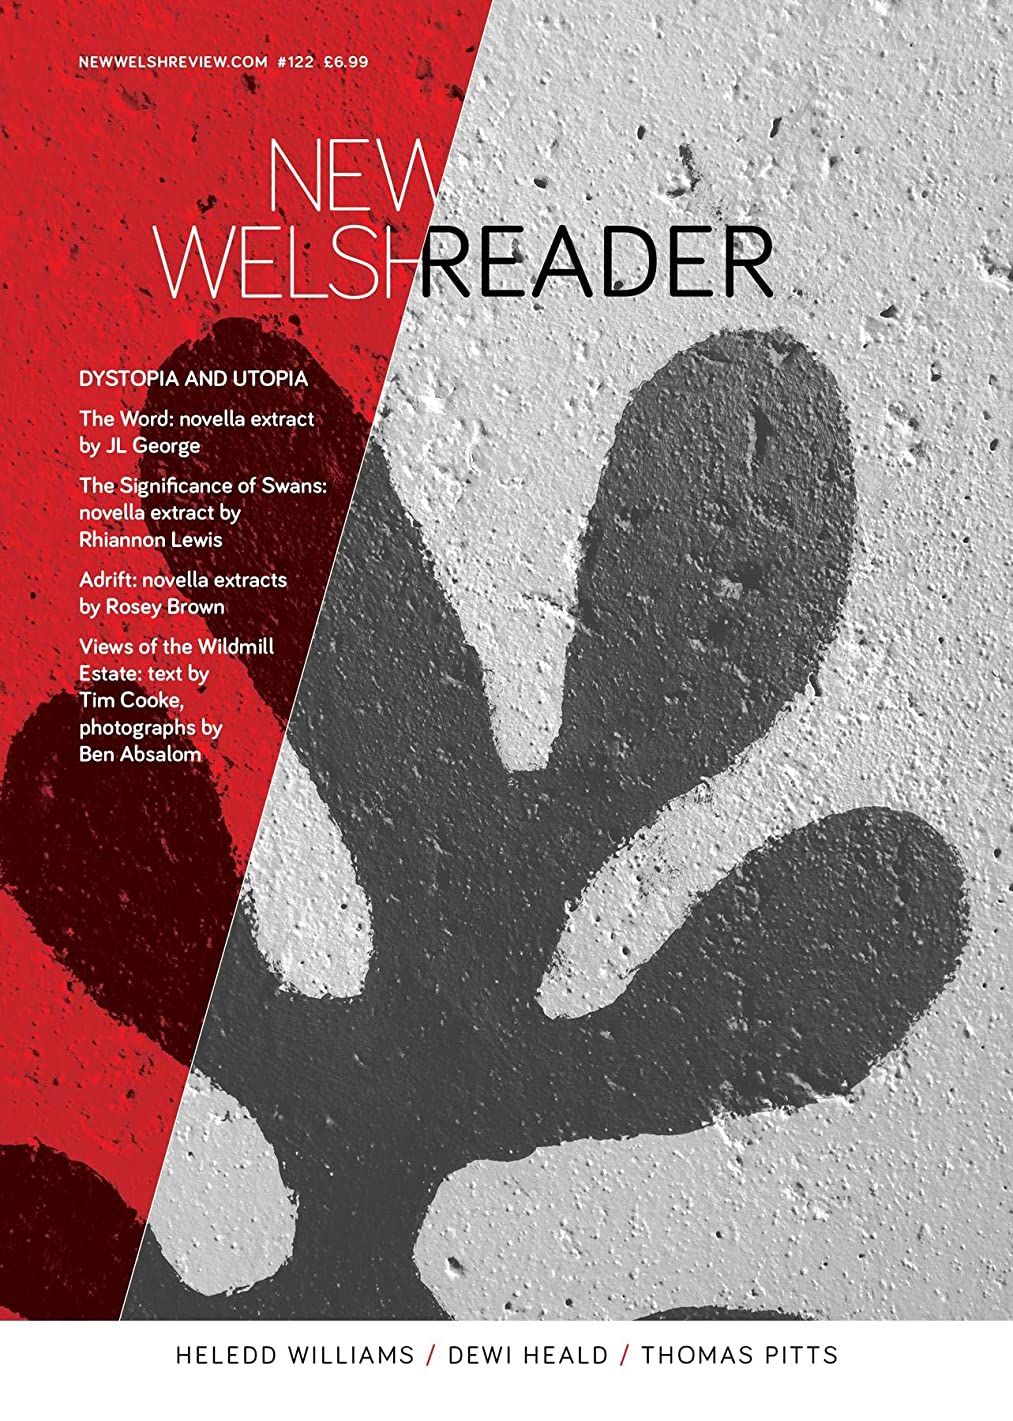 識別するめまい素朴なNew Welsh Reader 122: Dystopian Fiction from Wales (New Welsh Review) (English Edition)